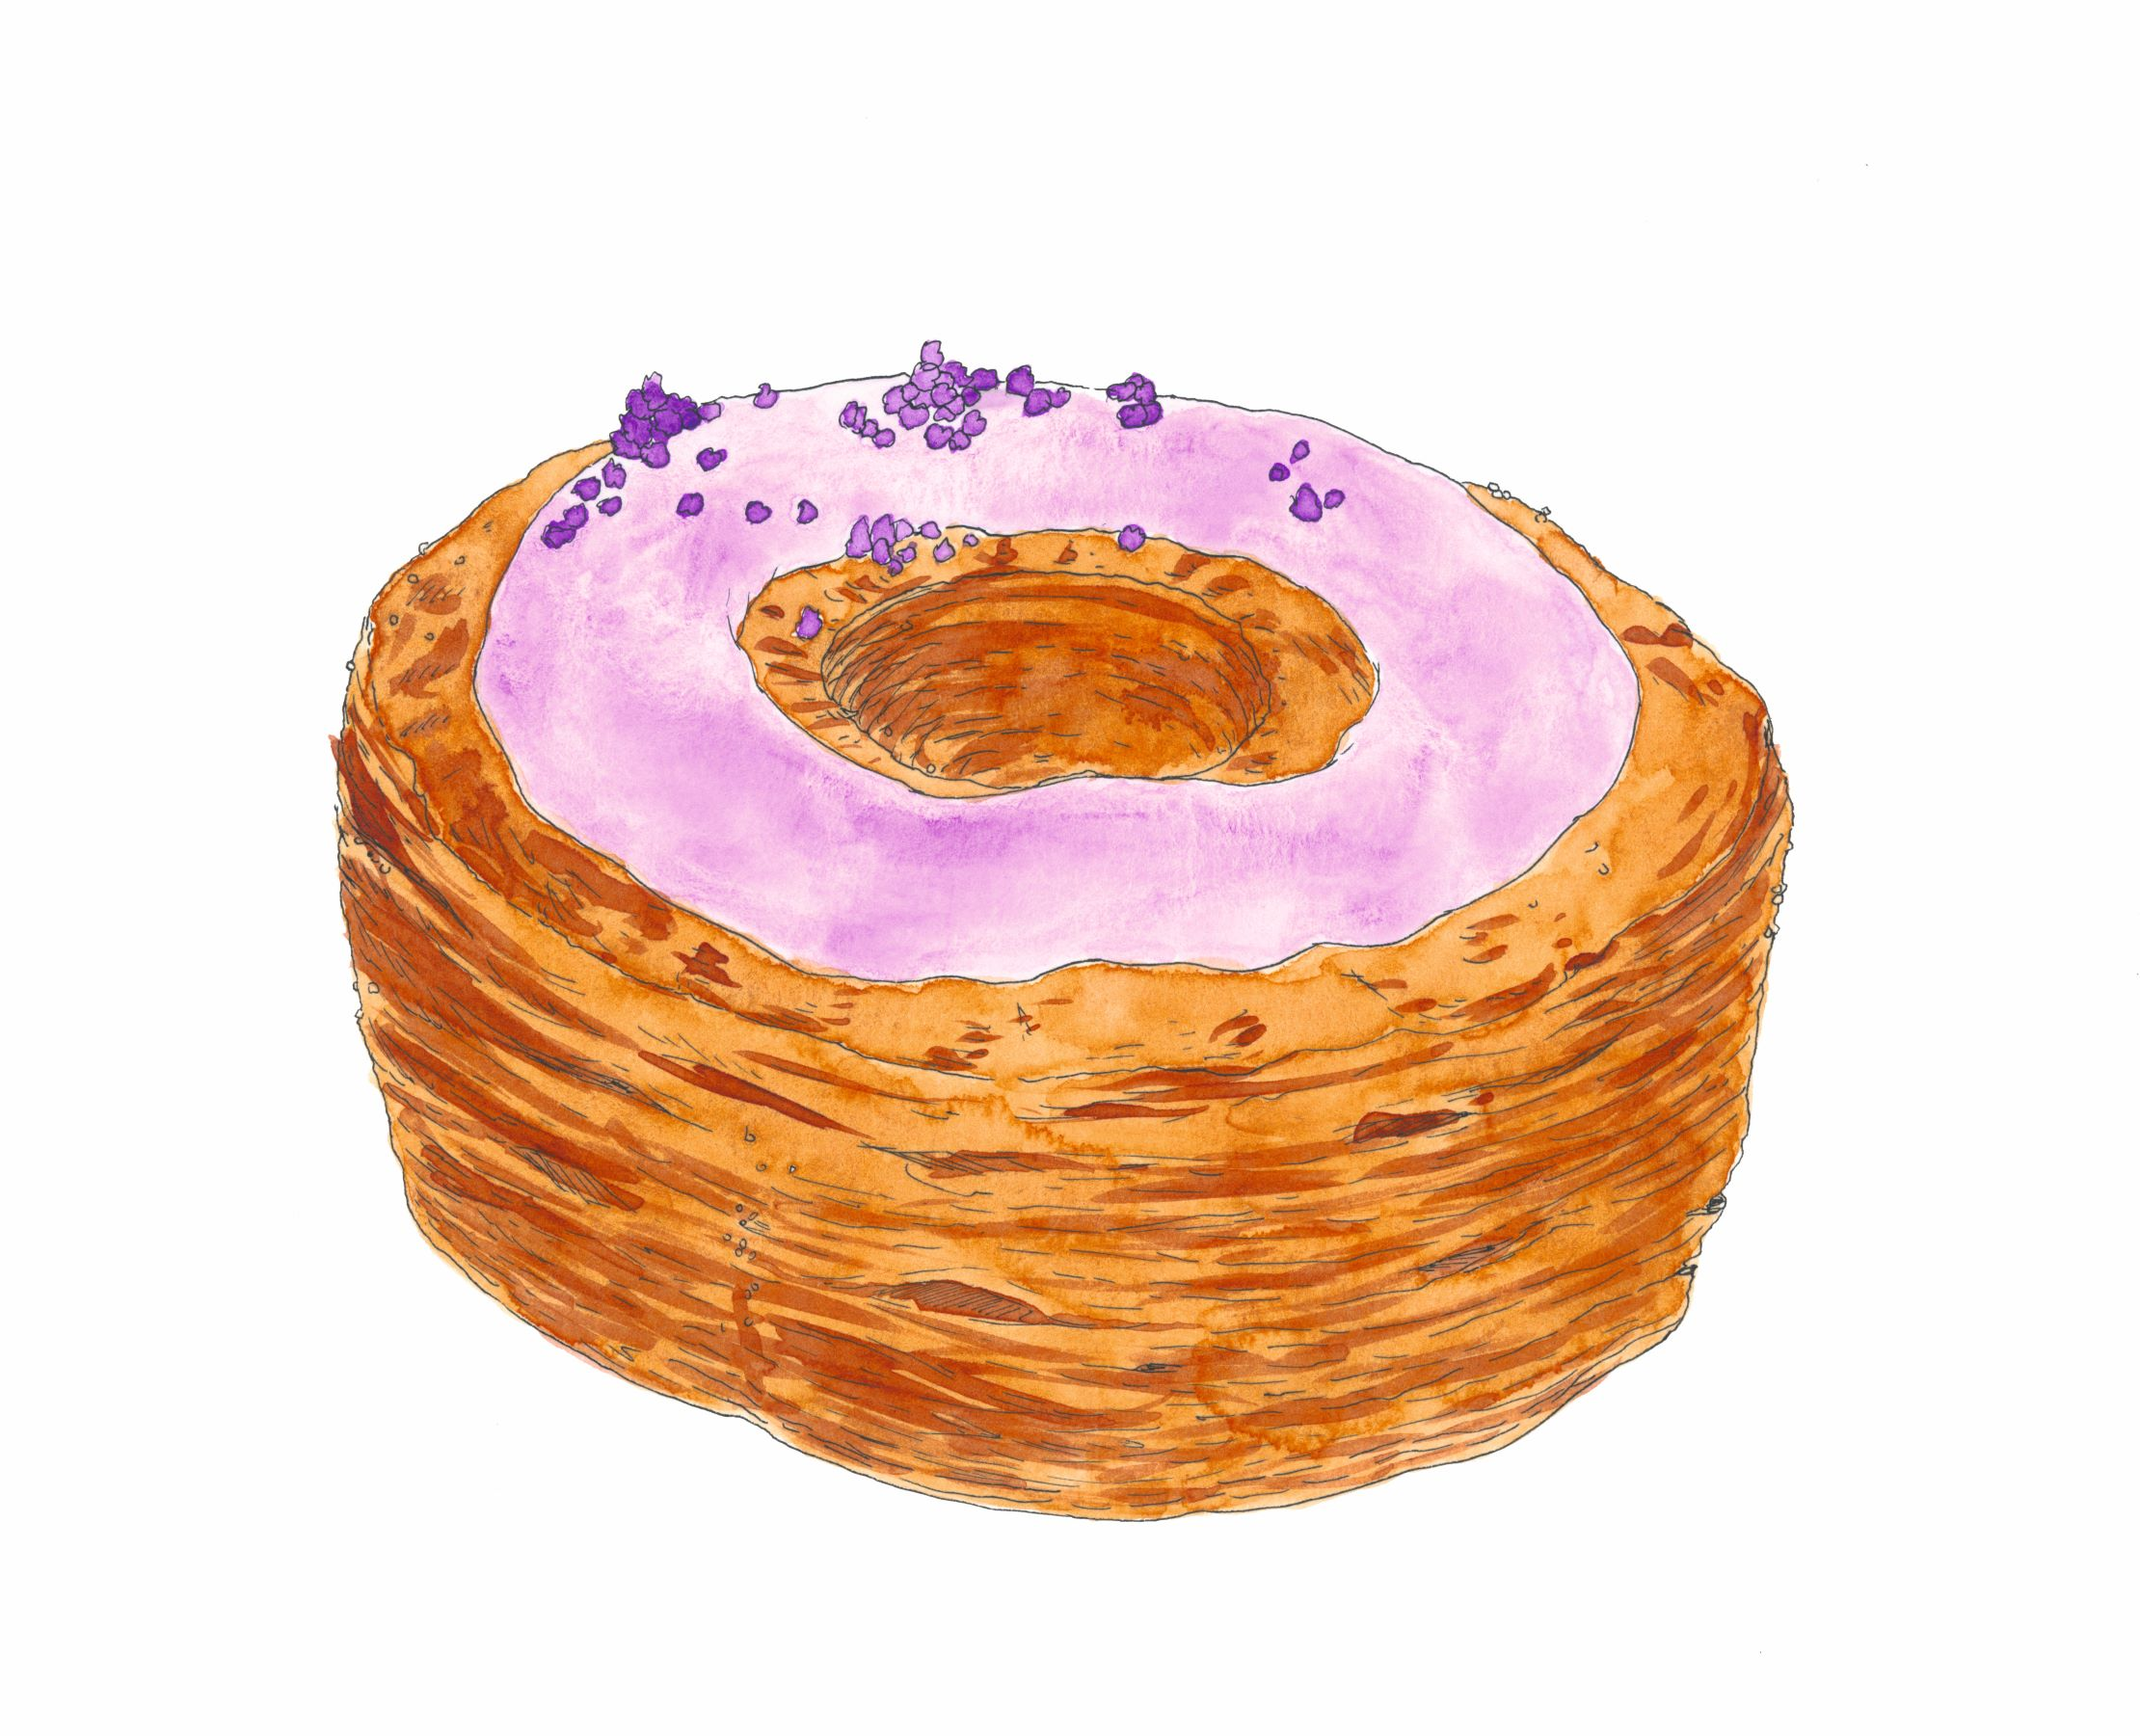 Cronut®, Dominique Ansel, Dominique Ansel Bakery, United States, 2013